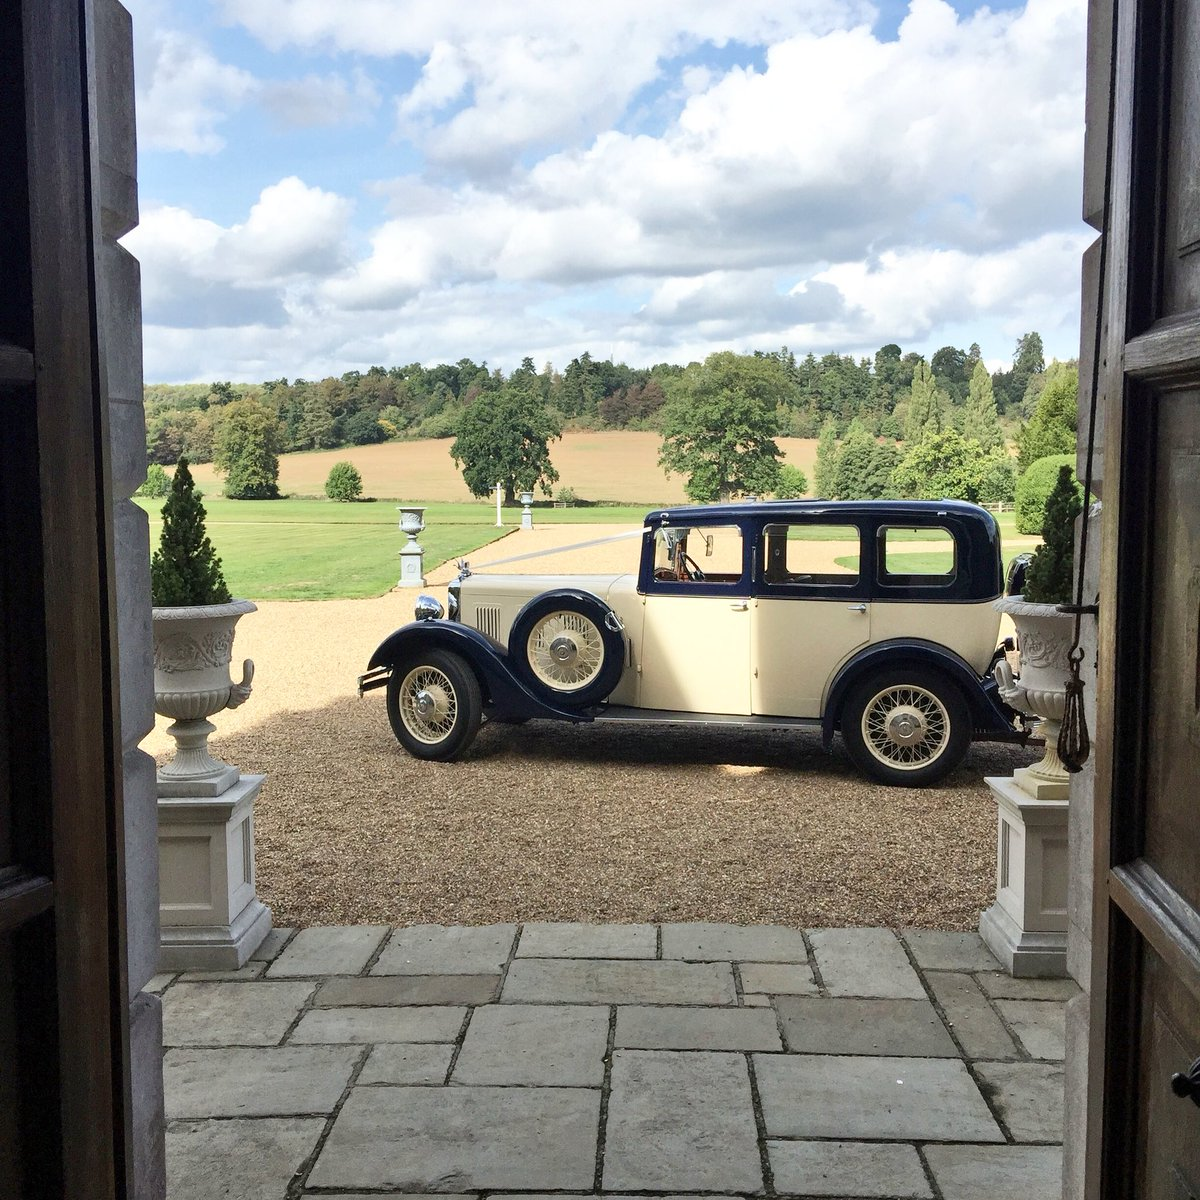 Perfect wedding weather today. This summer has been amazing. Drinks and canapés in the Walled Garden? Yes please! @Loseleyevents #wedding #gettingmarried #weddingcar #venue #brideandgroom #roomwithaview